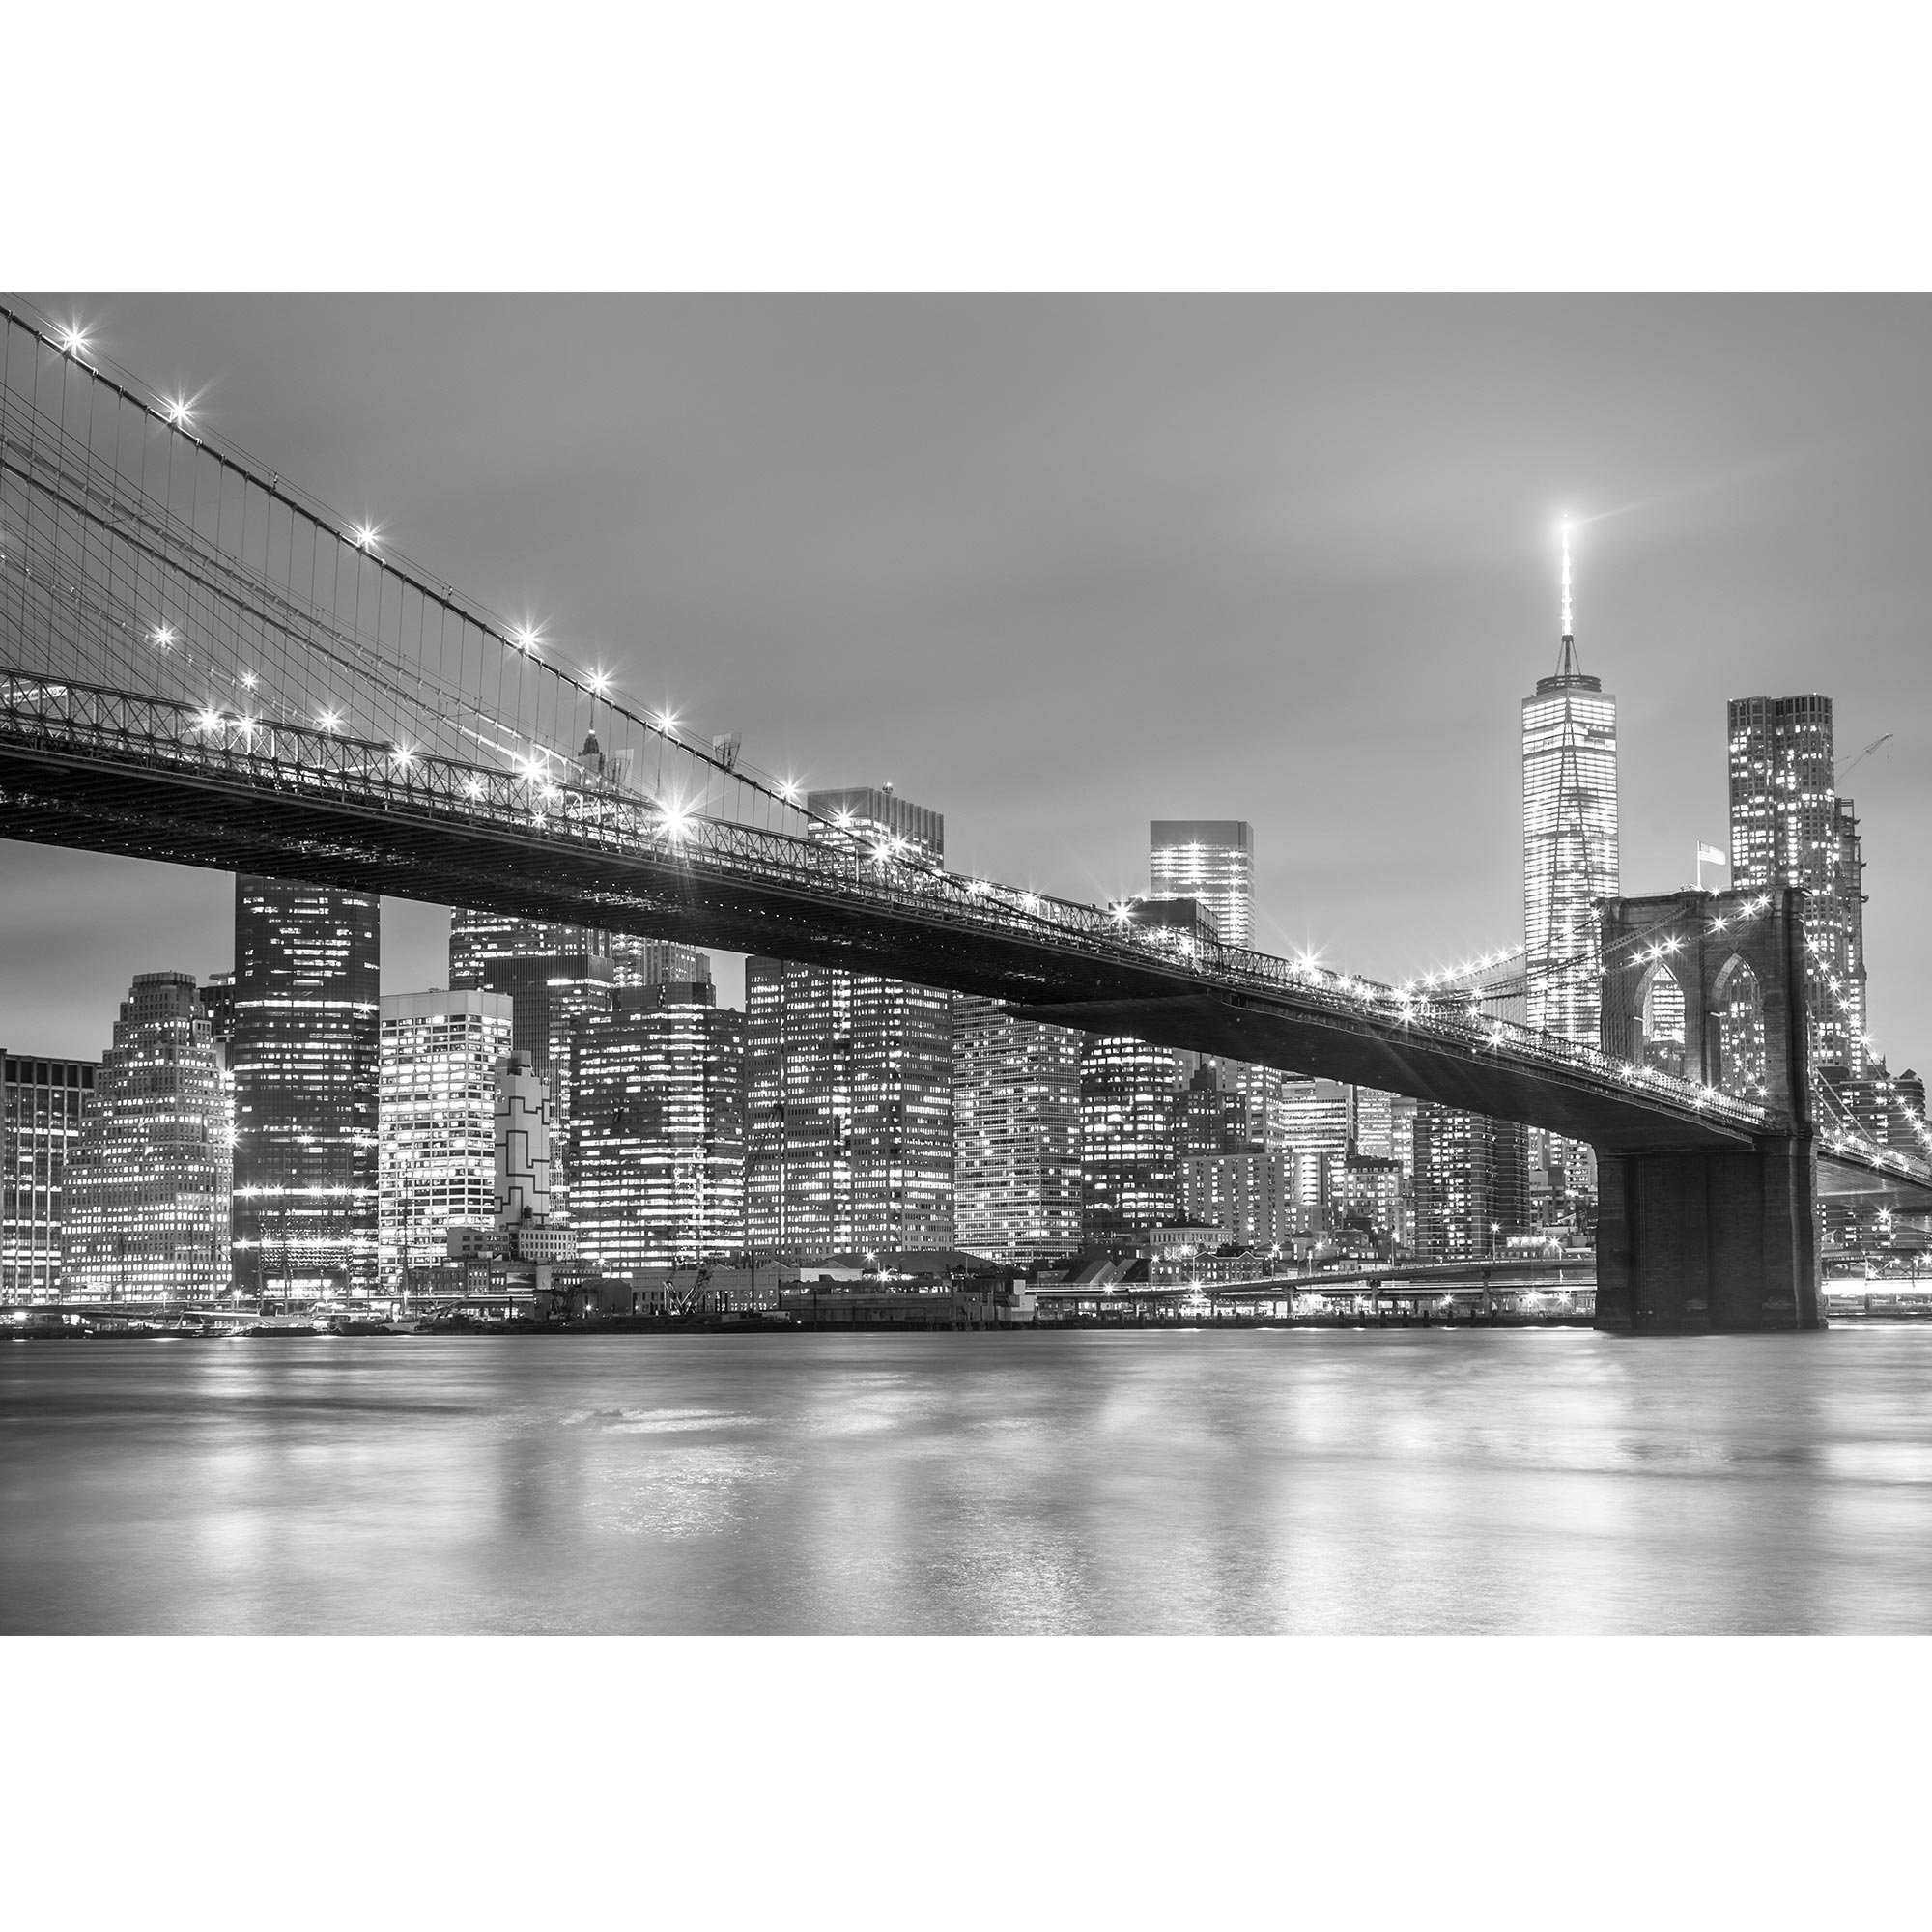 wall26 - Brooklyn Bridge and New York City Manhattan Downtown Skyline at Dusk with Skyscrapers - Removable Wall Mural | Self-Adhesive Large Wallpaper - 100x144 inches by wall26 (Image #2)